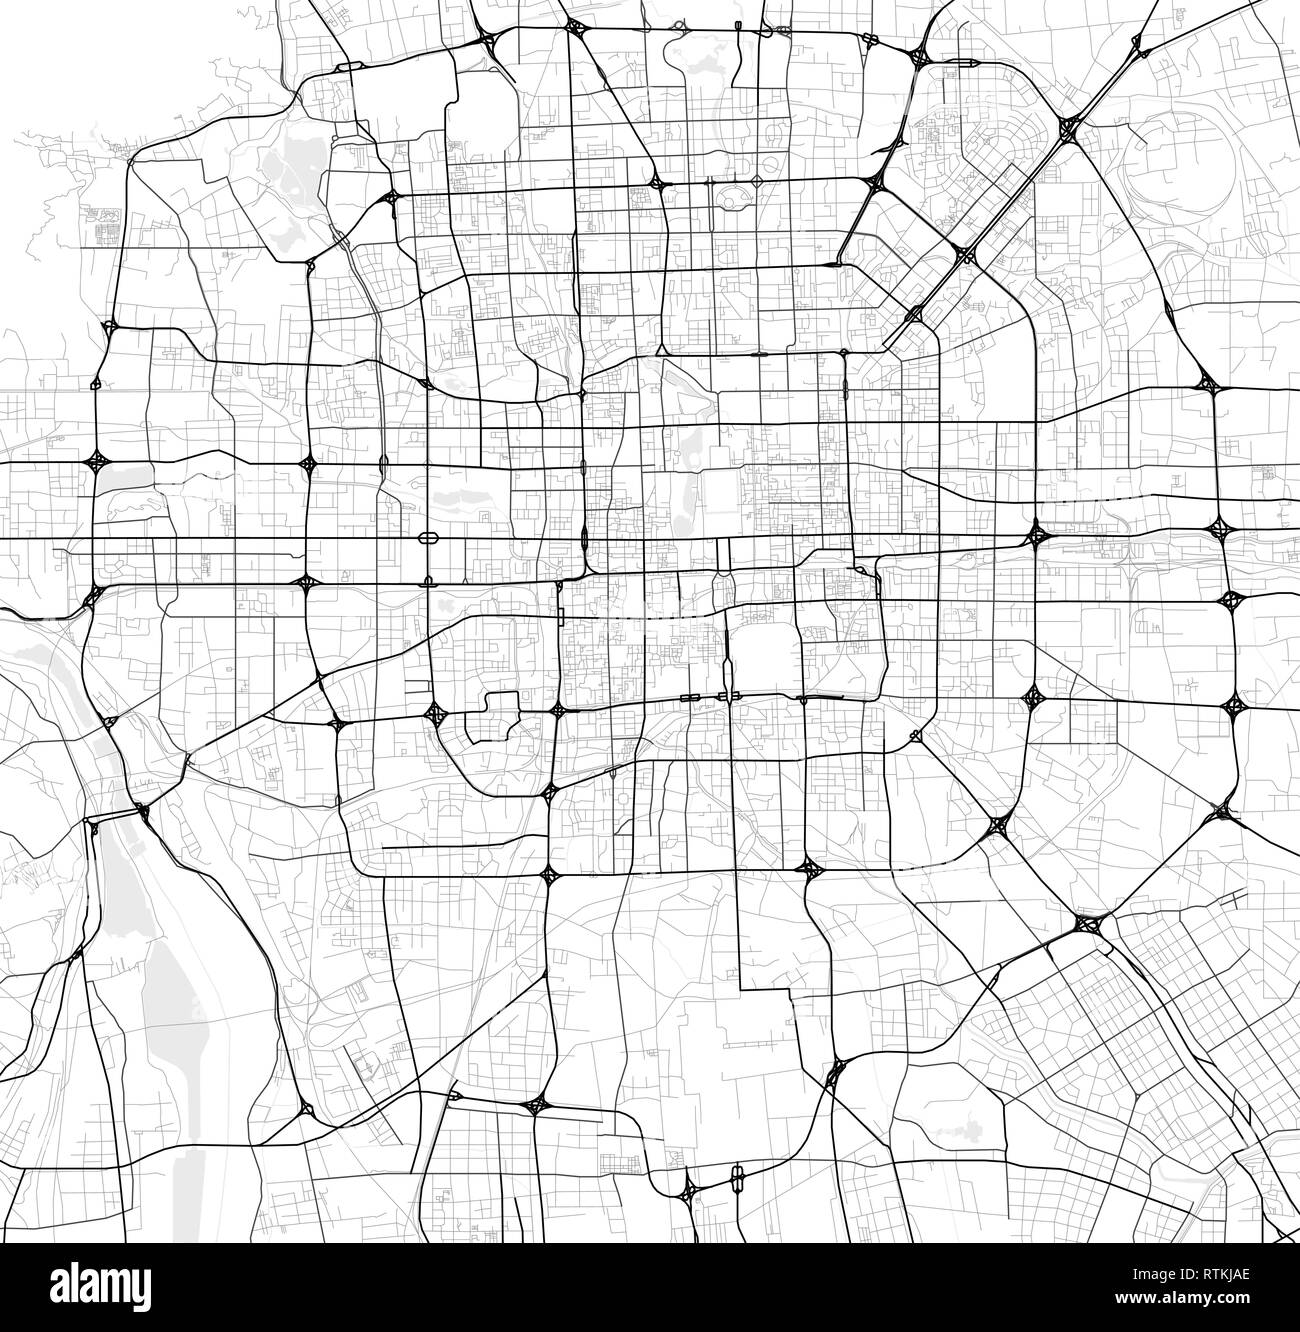 Beijing Map Vector High Resolution Stock Photography And Images Alamy